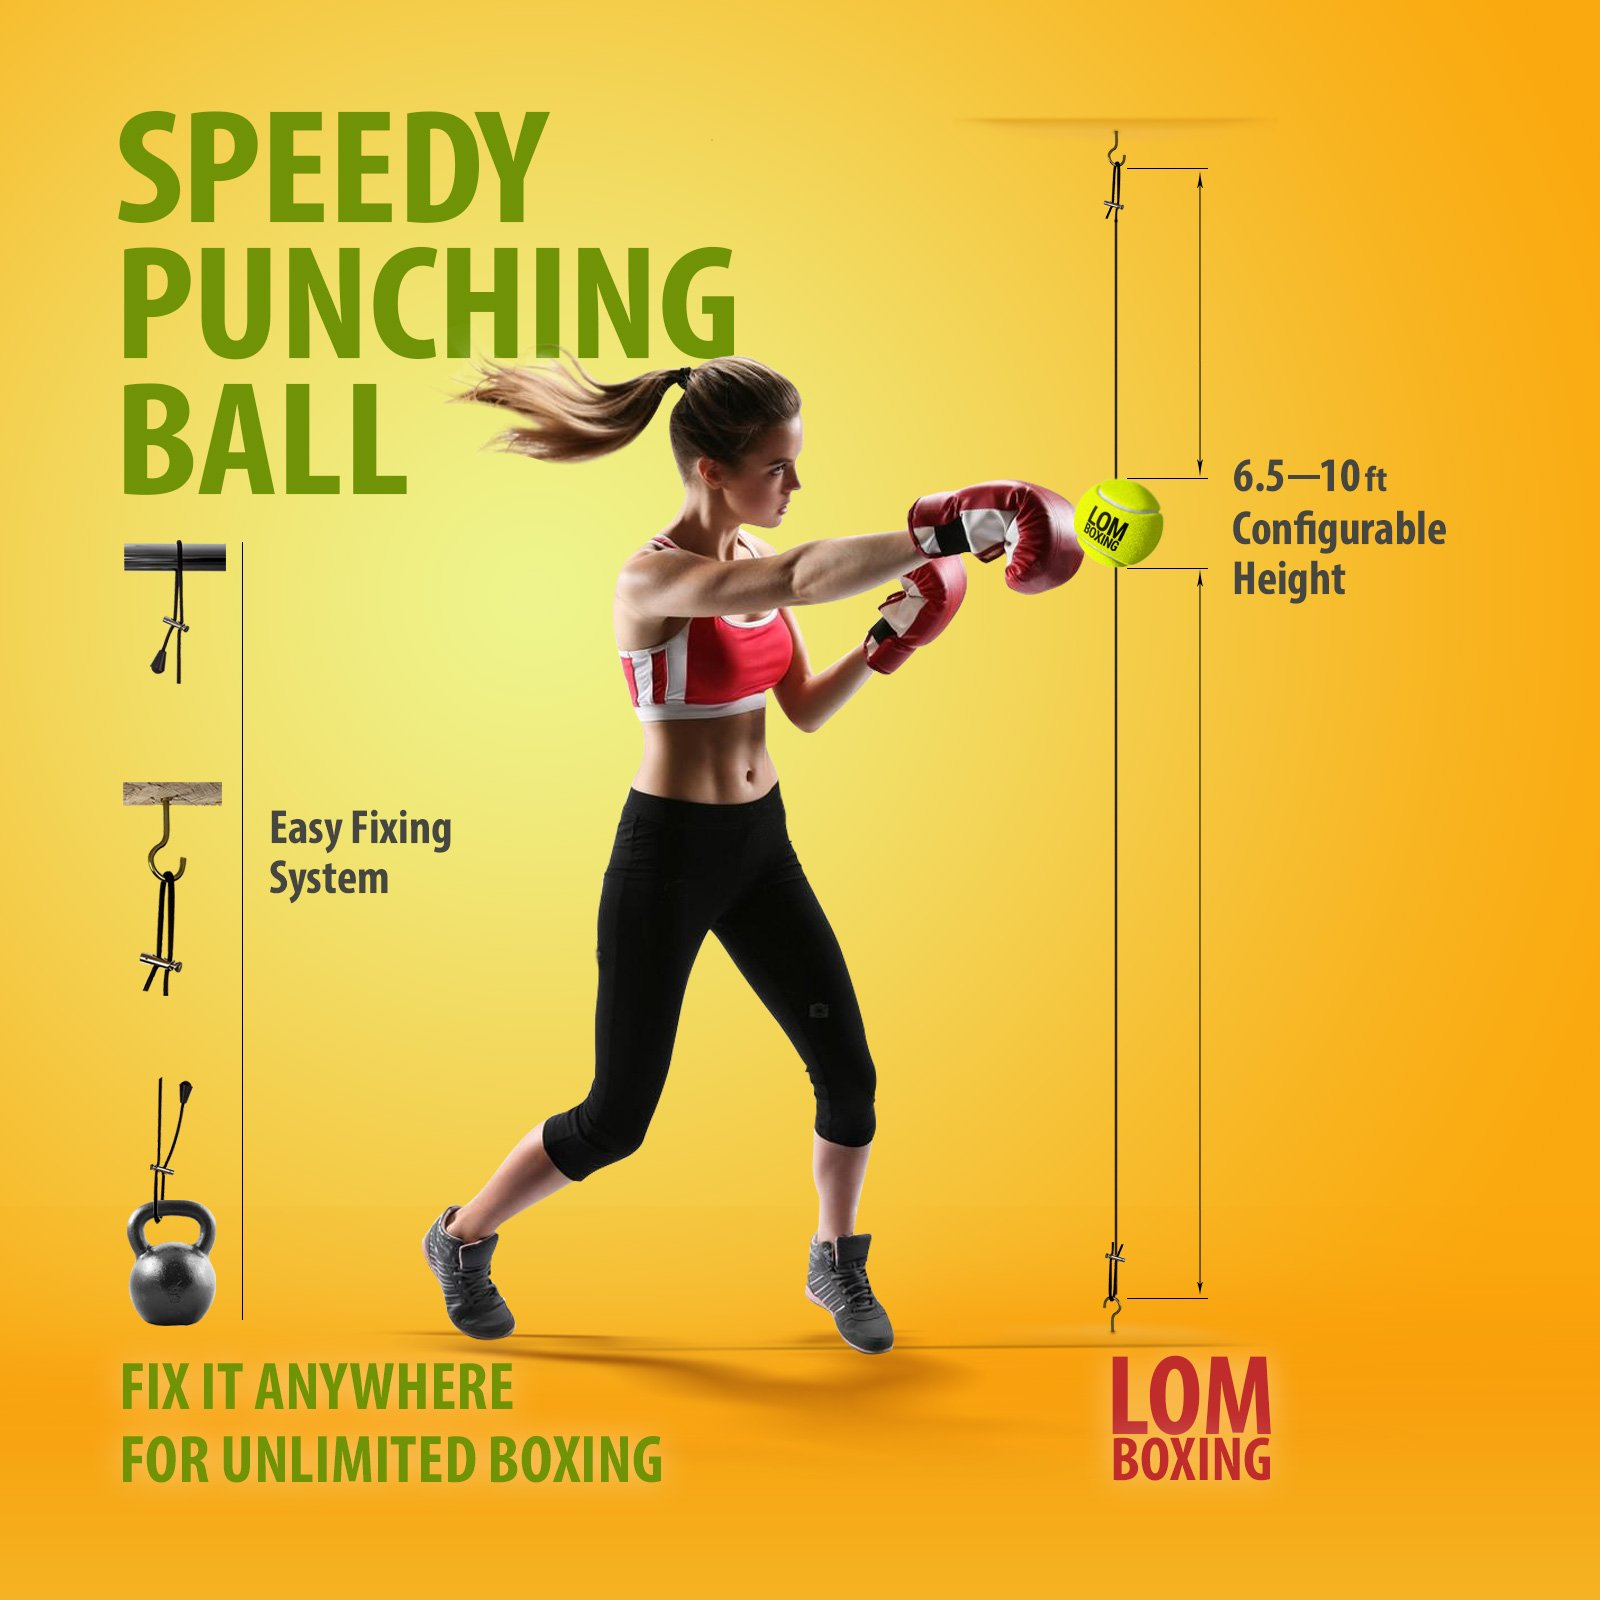 LOM Fight Ball Reflex, Boxing Ball, Double End Punching Ball, Boxing Equipment, Trainer for Workout and Fitness, Boxing Tennis Ball for speed punch, Speed Bag for All Ages